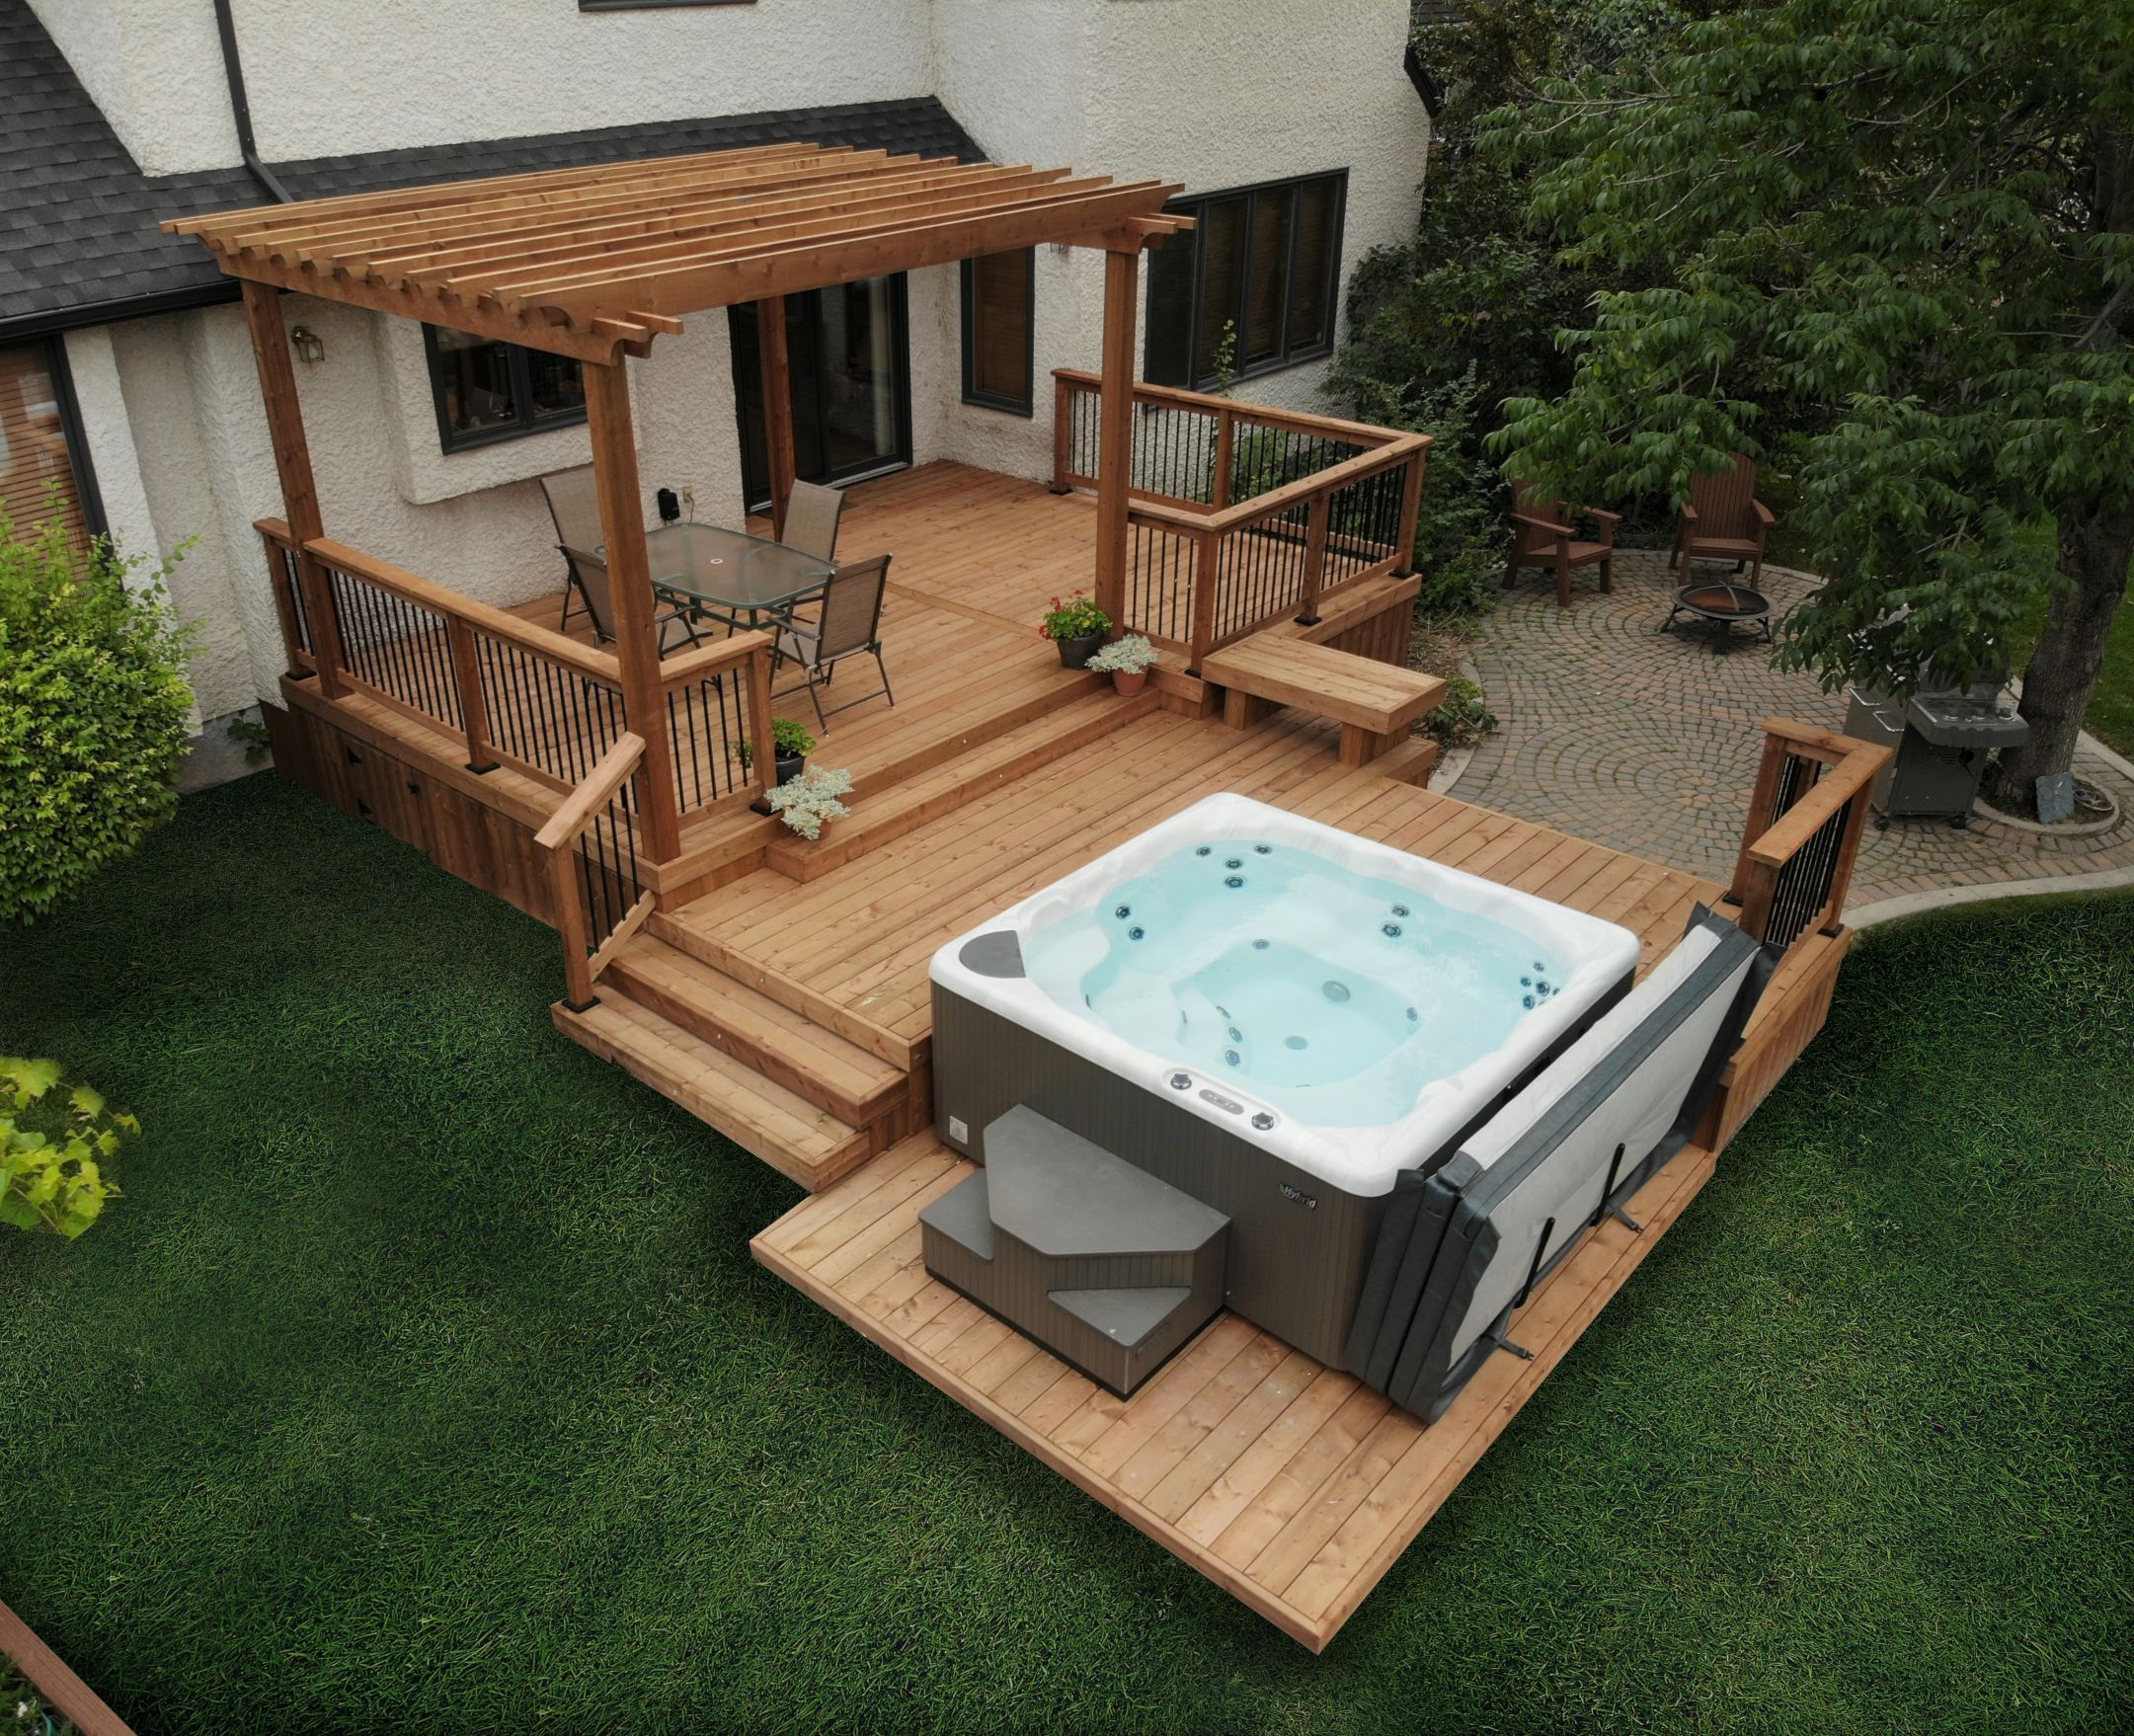 Pin by Taylor Colwell on Dedrick in 20   Hot tub backyard, Hot ...